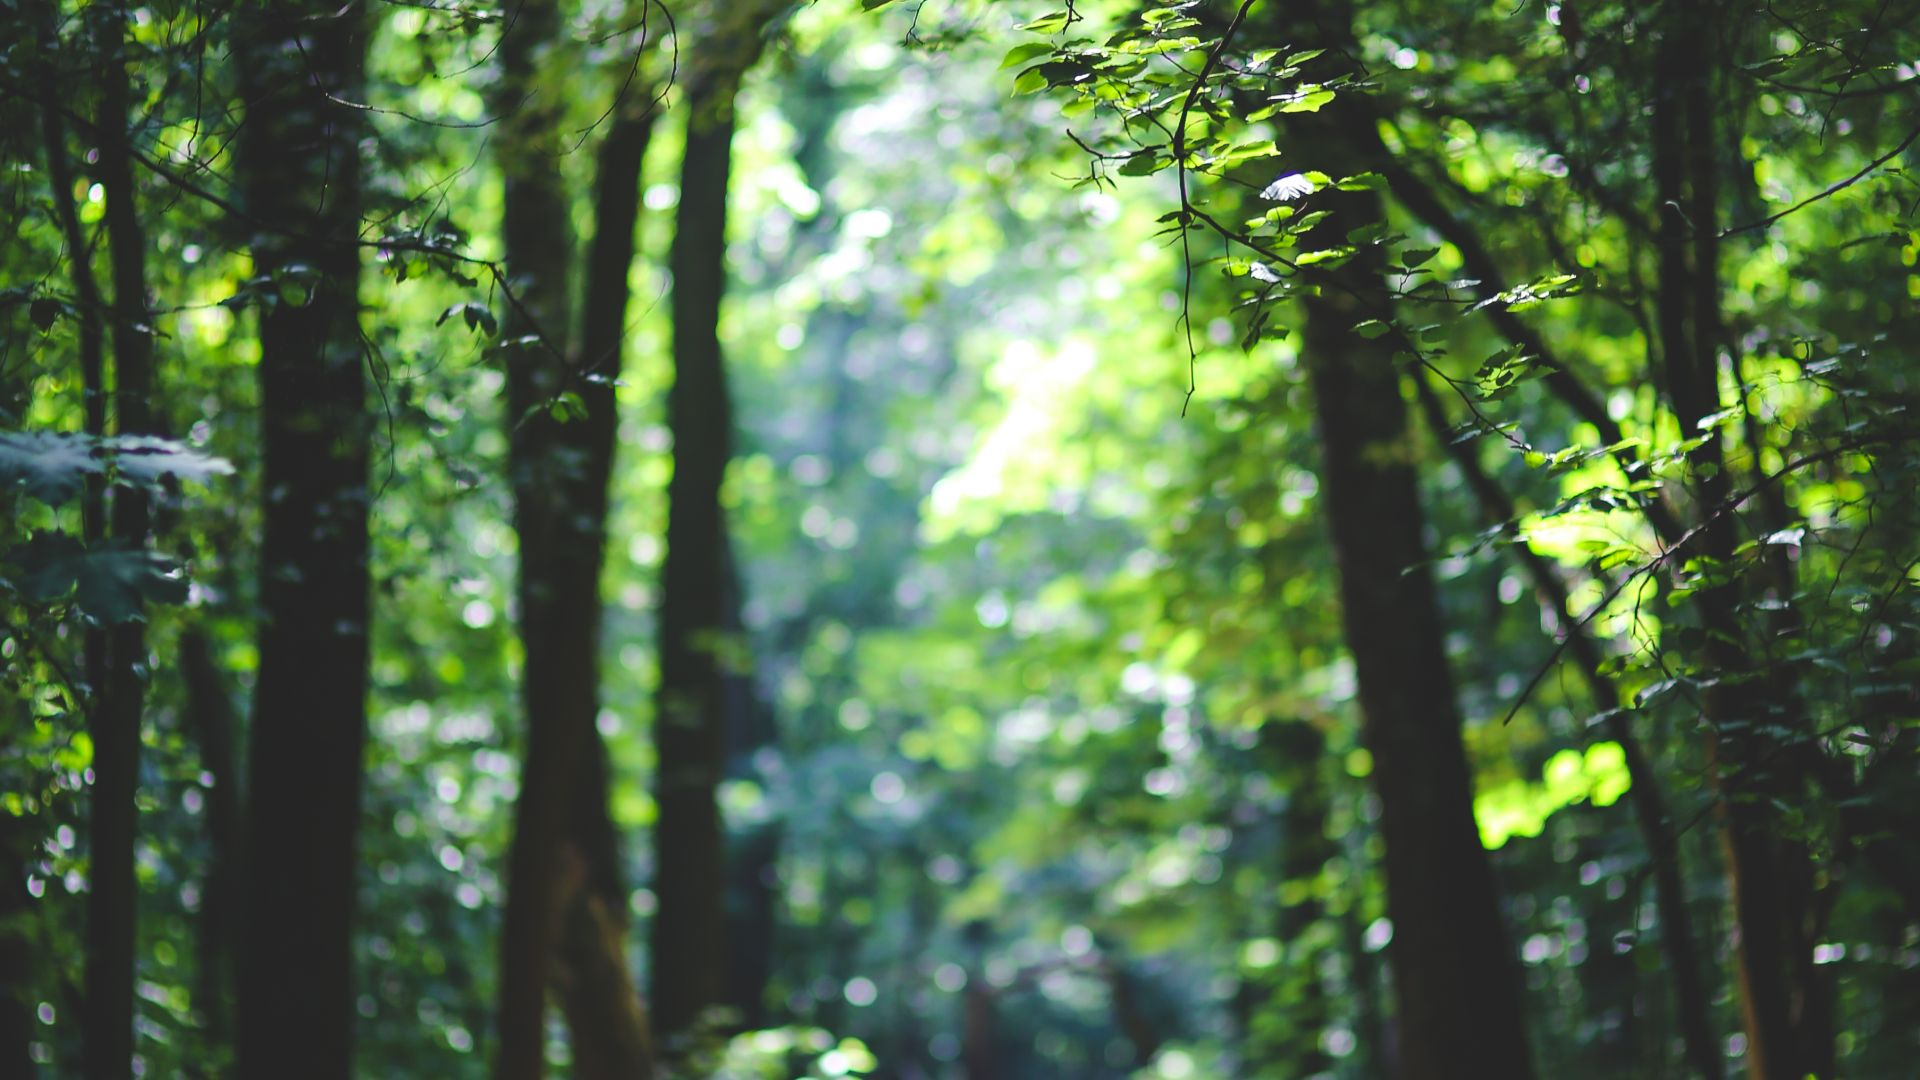 Wallpaper forest 5k 4k wallpaper 8k trees sunlight for Wallpaper home 4k